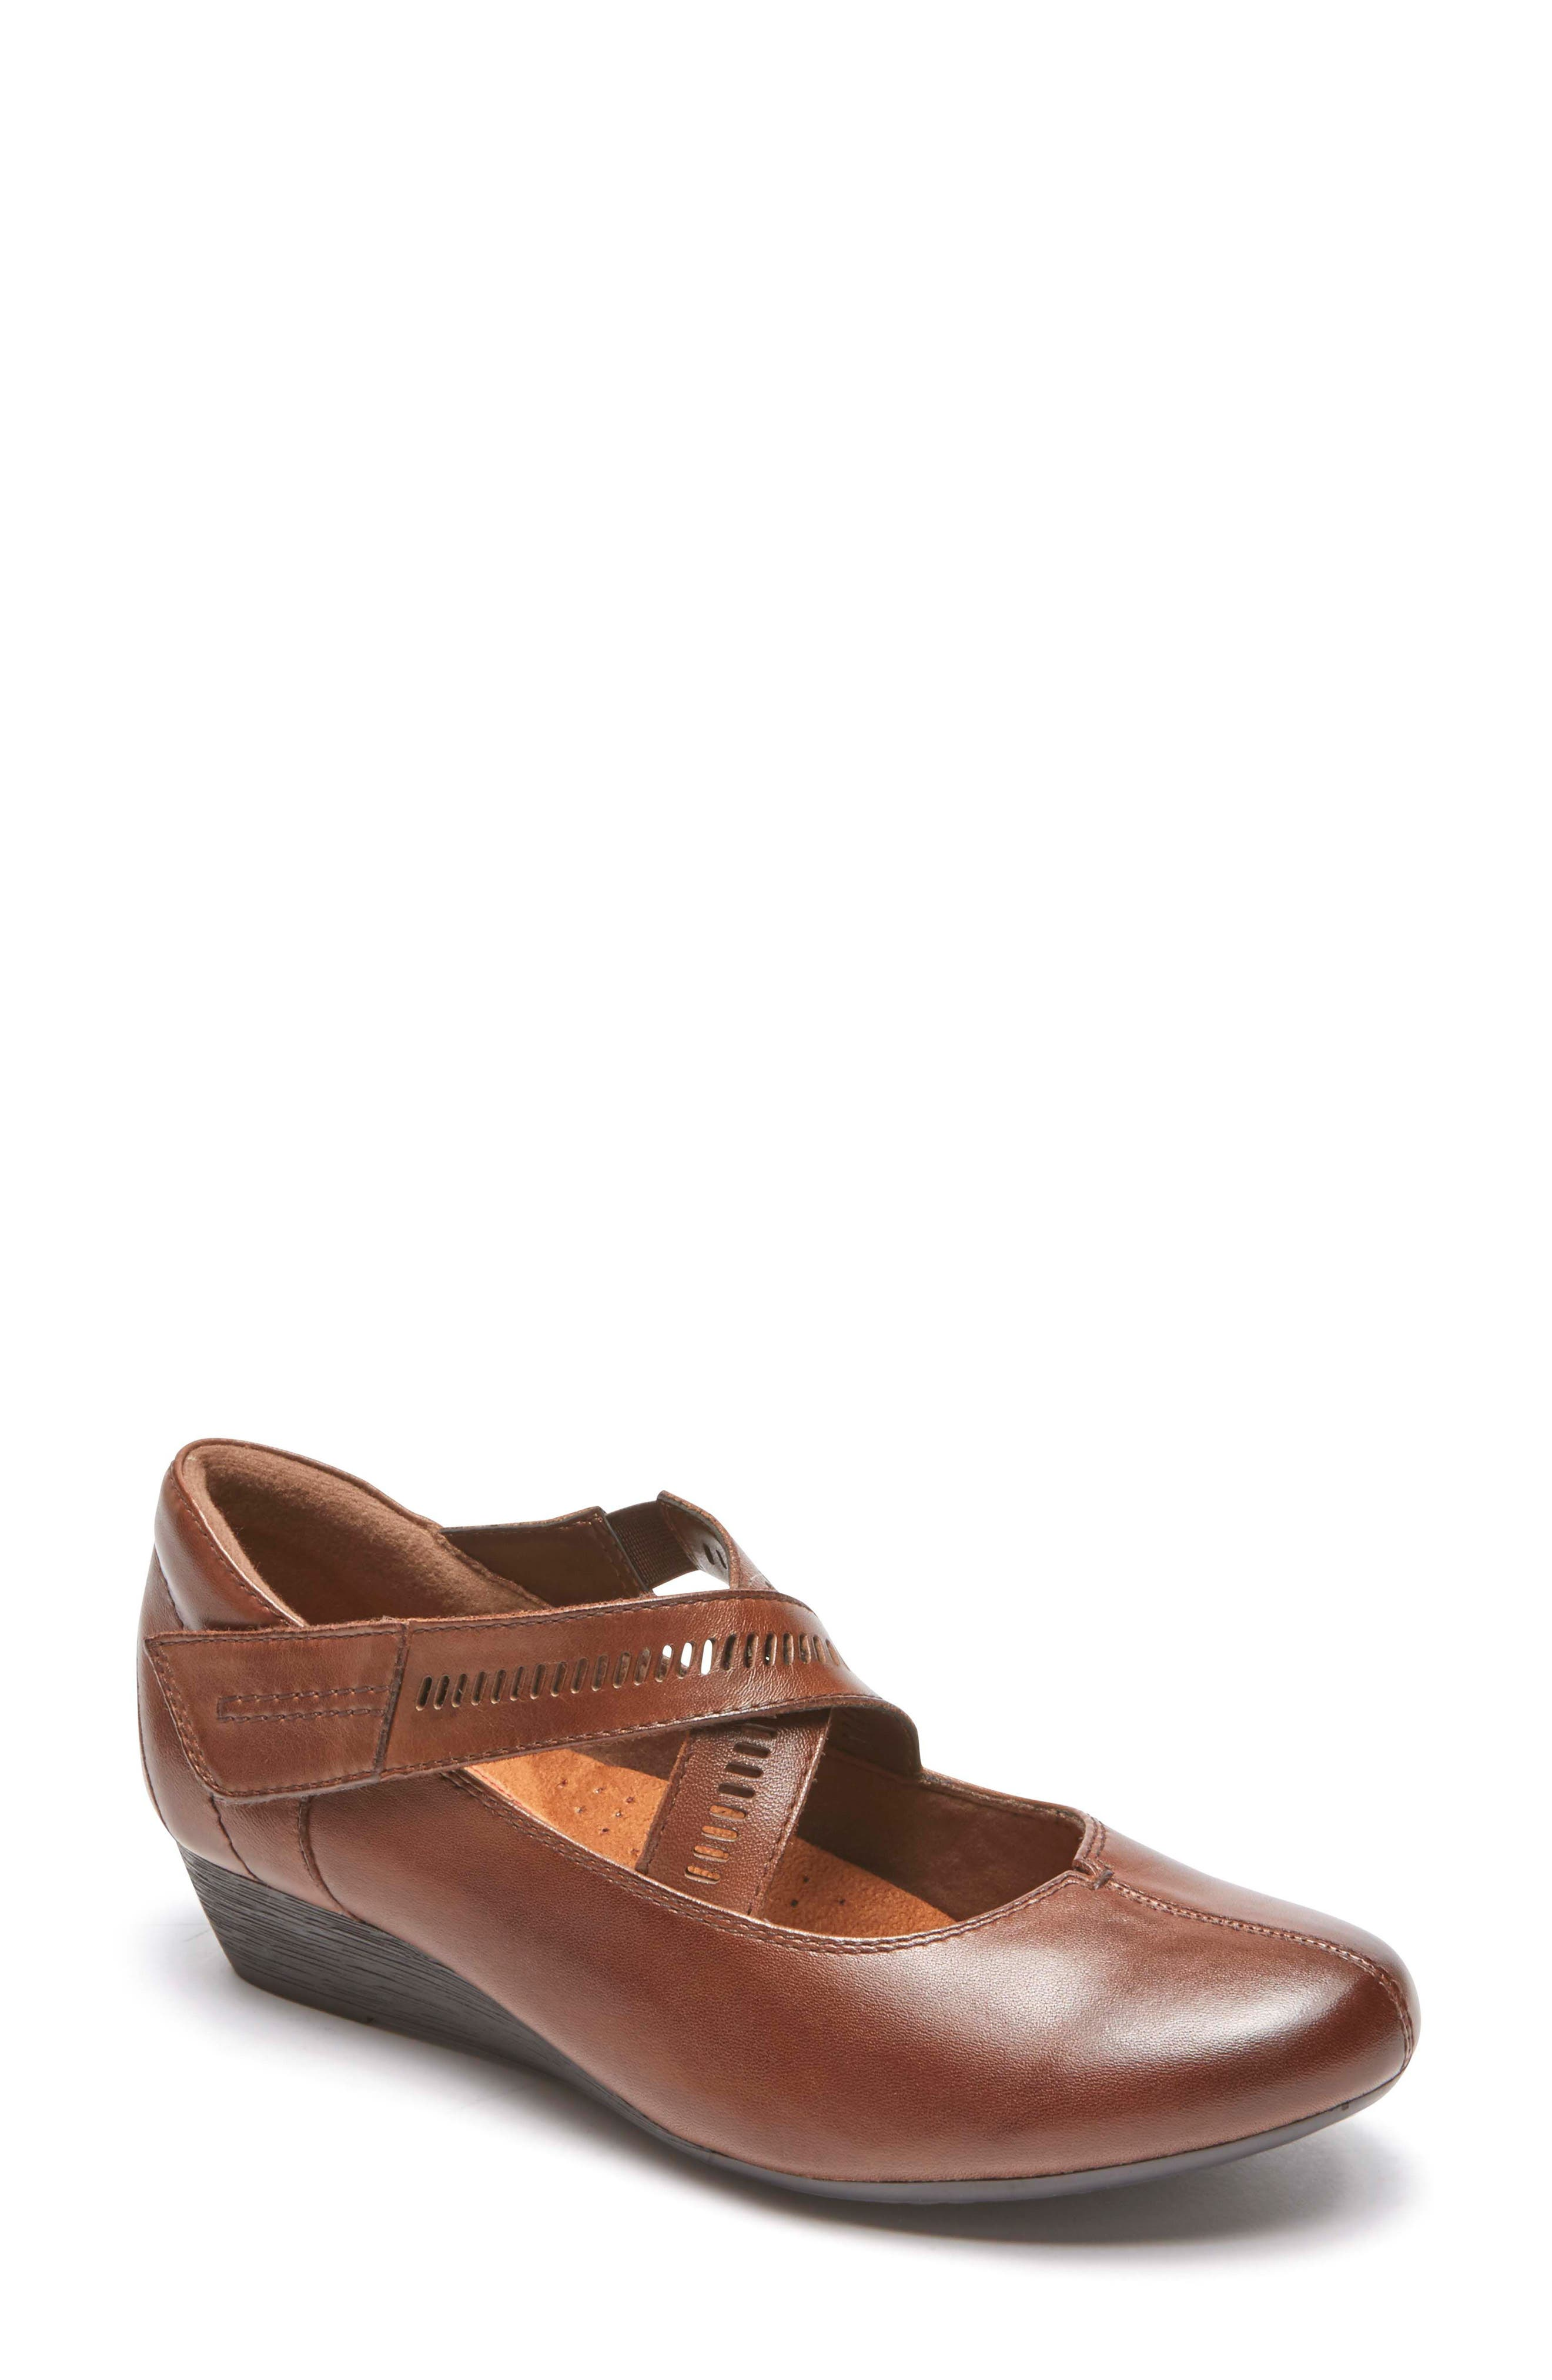 'Janet' Mary Jane Wedge,                         Main,                         color, Bat Leather